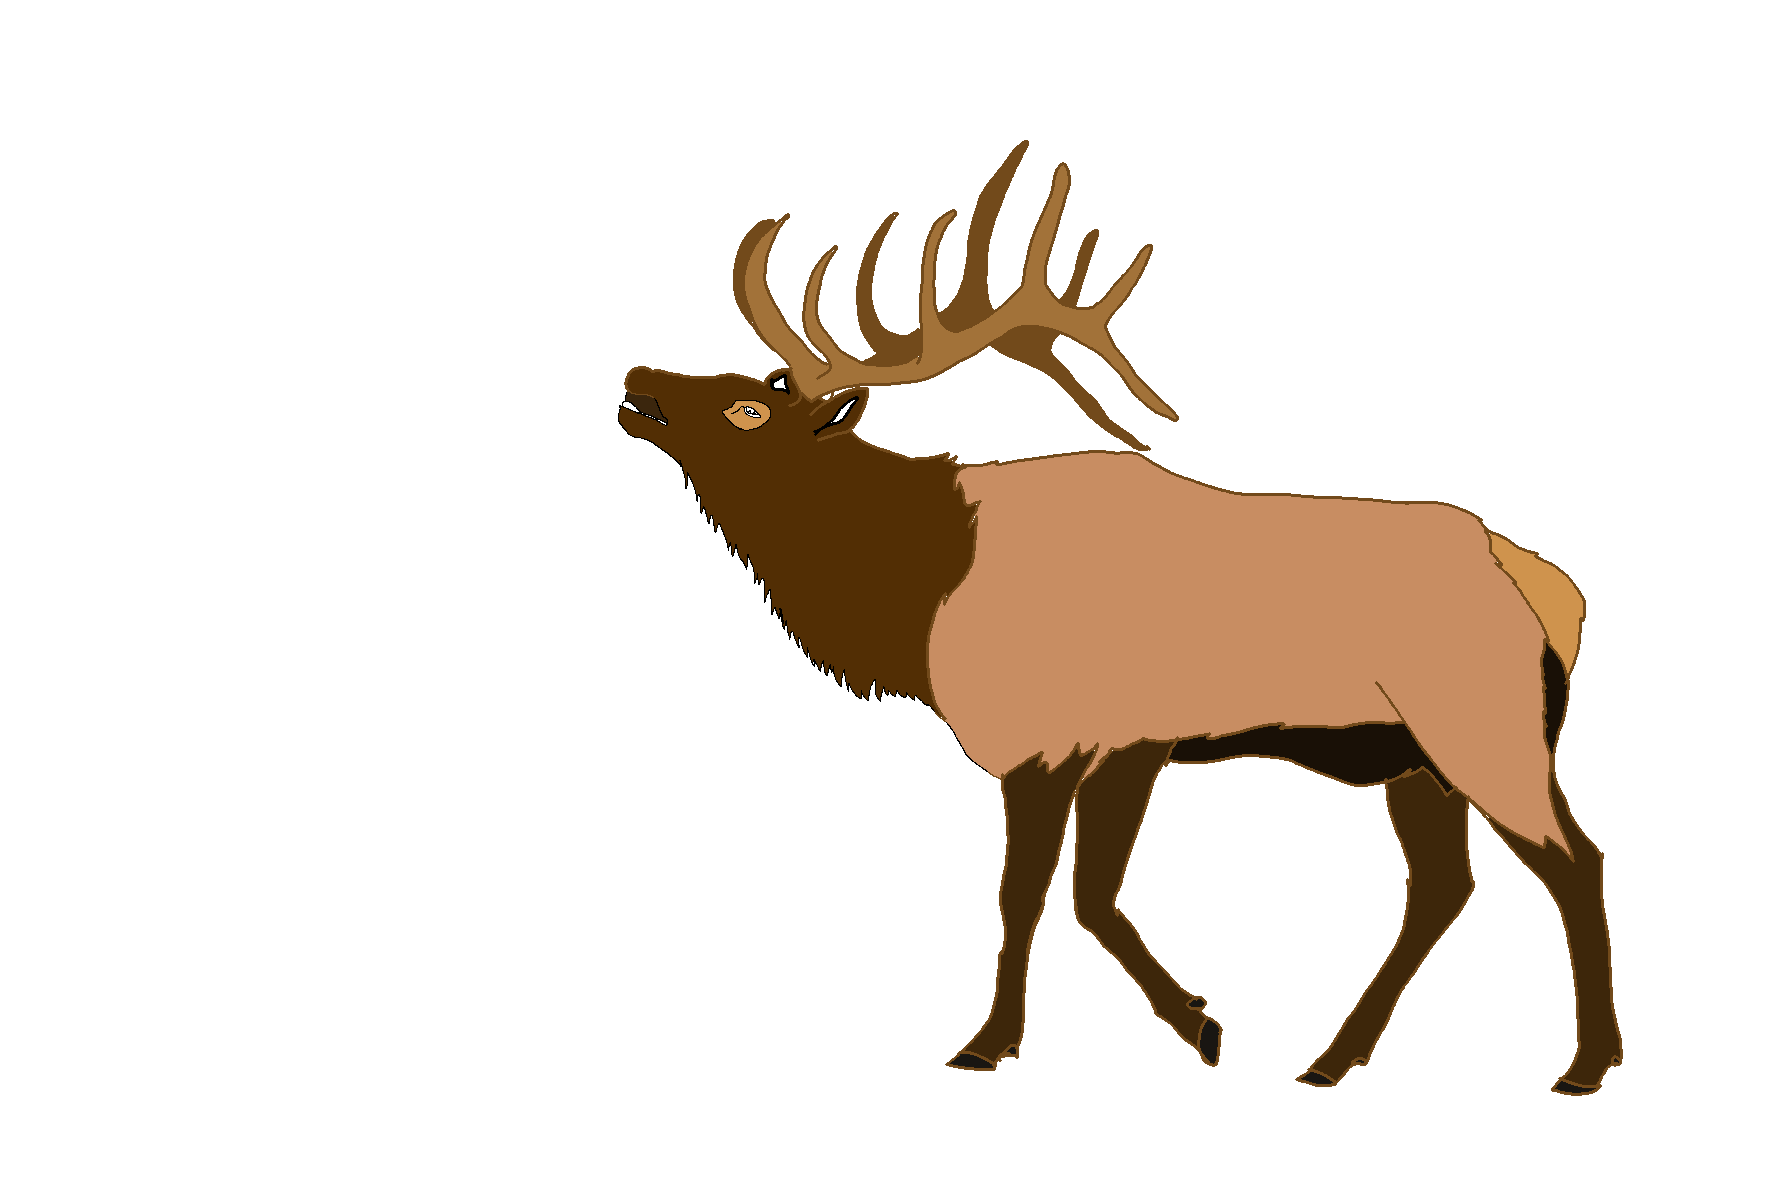 Hunting clipart elk. Free images at clker